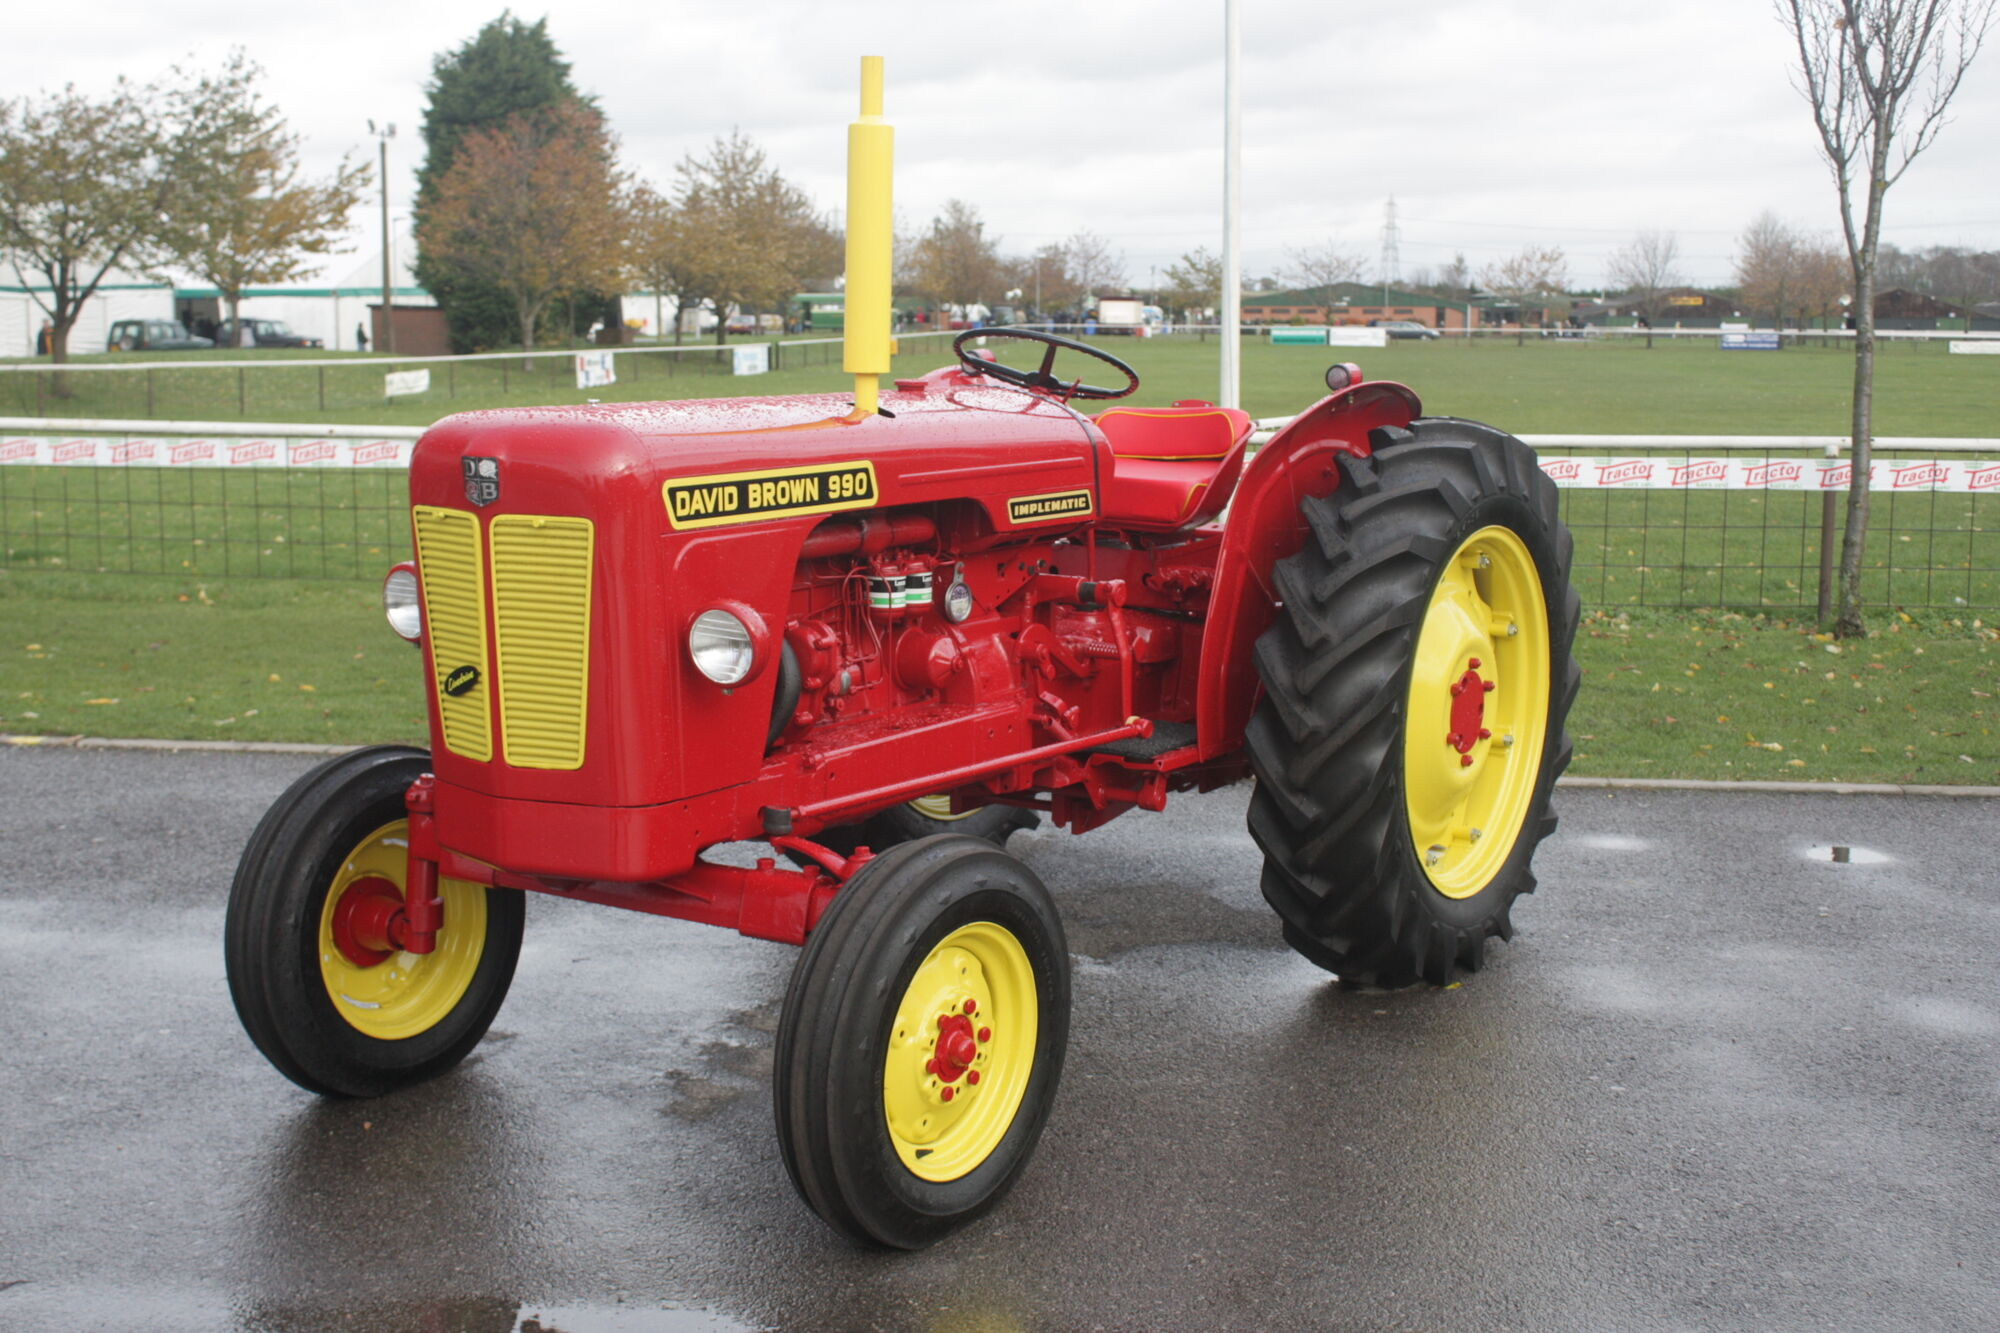 1971 Mtd Tractors : David brown tractor construction plant wiki